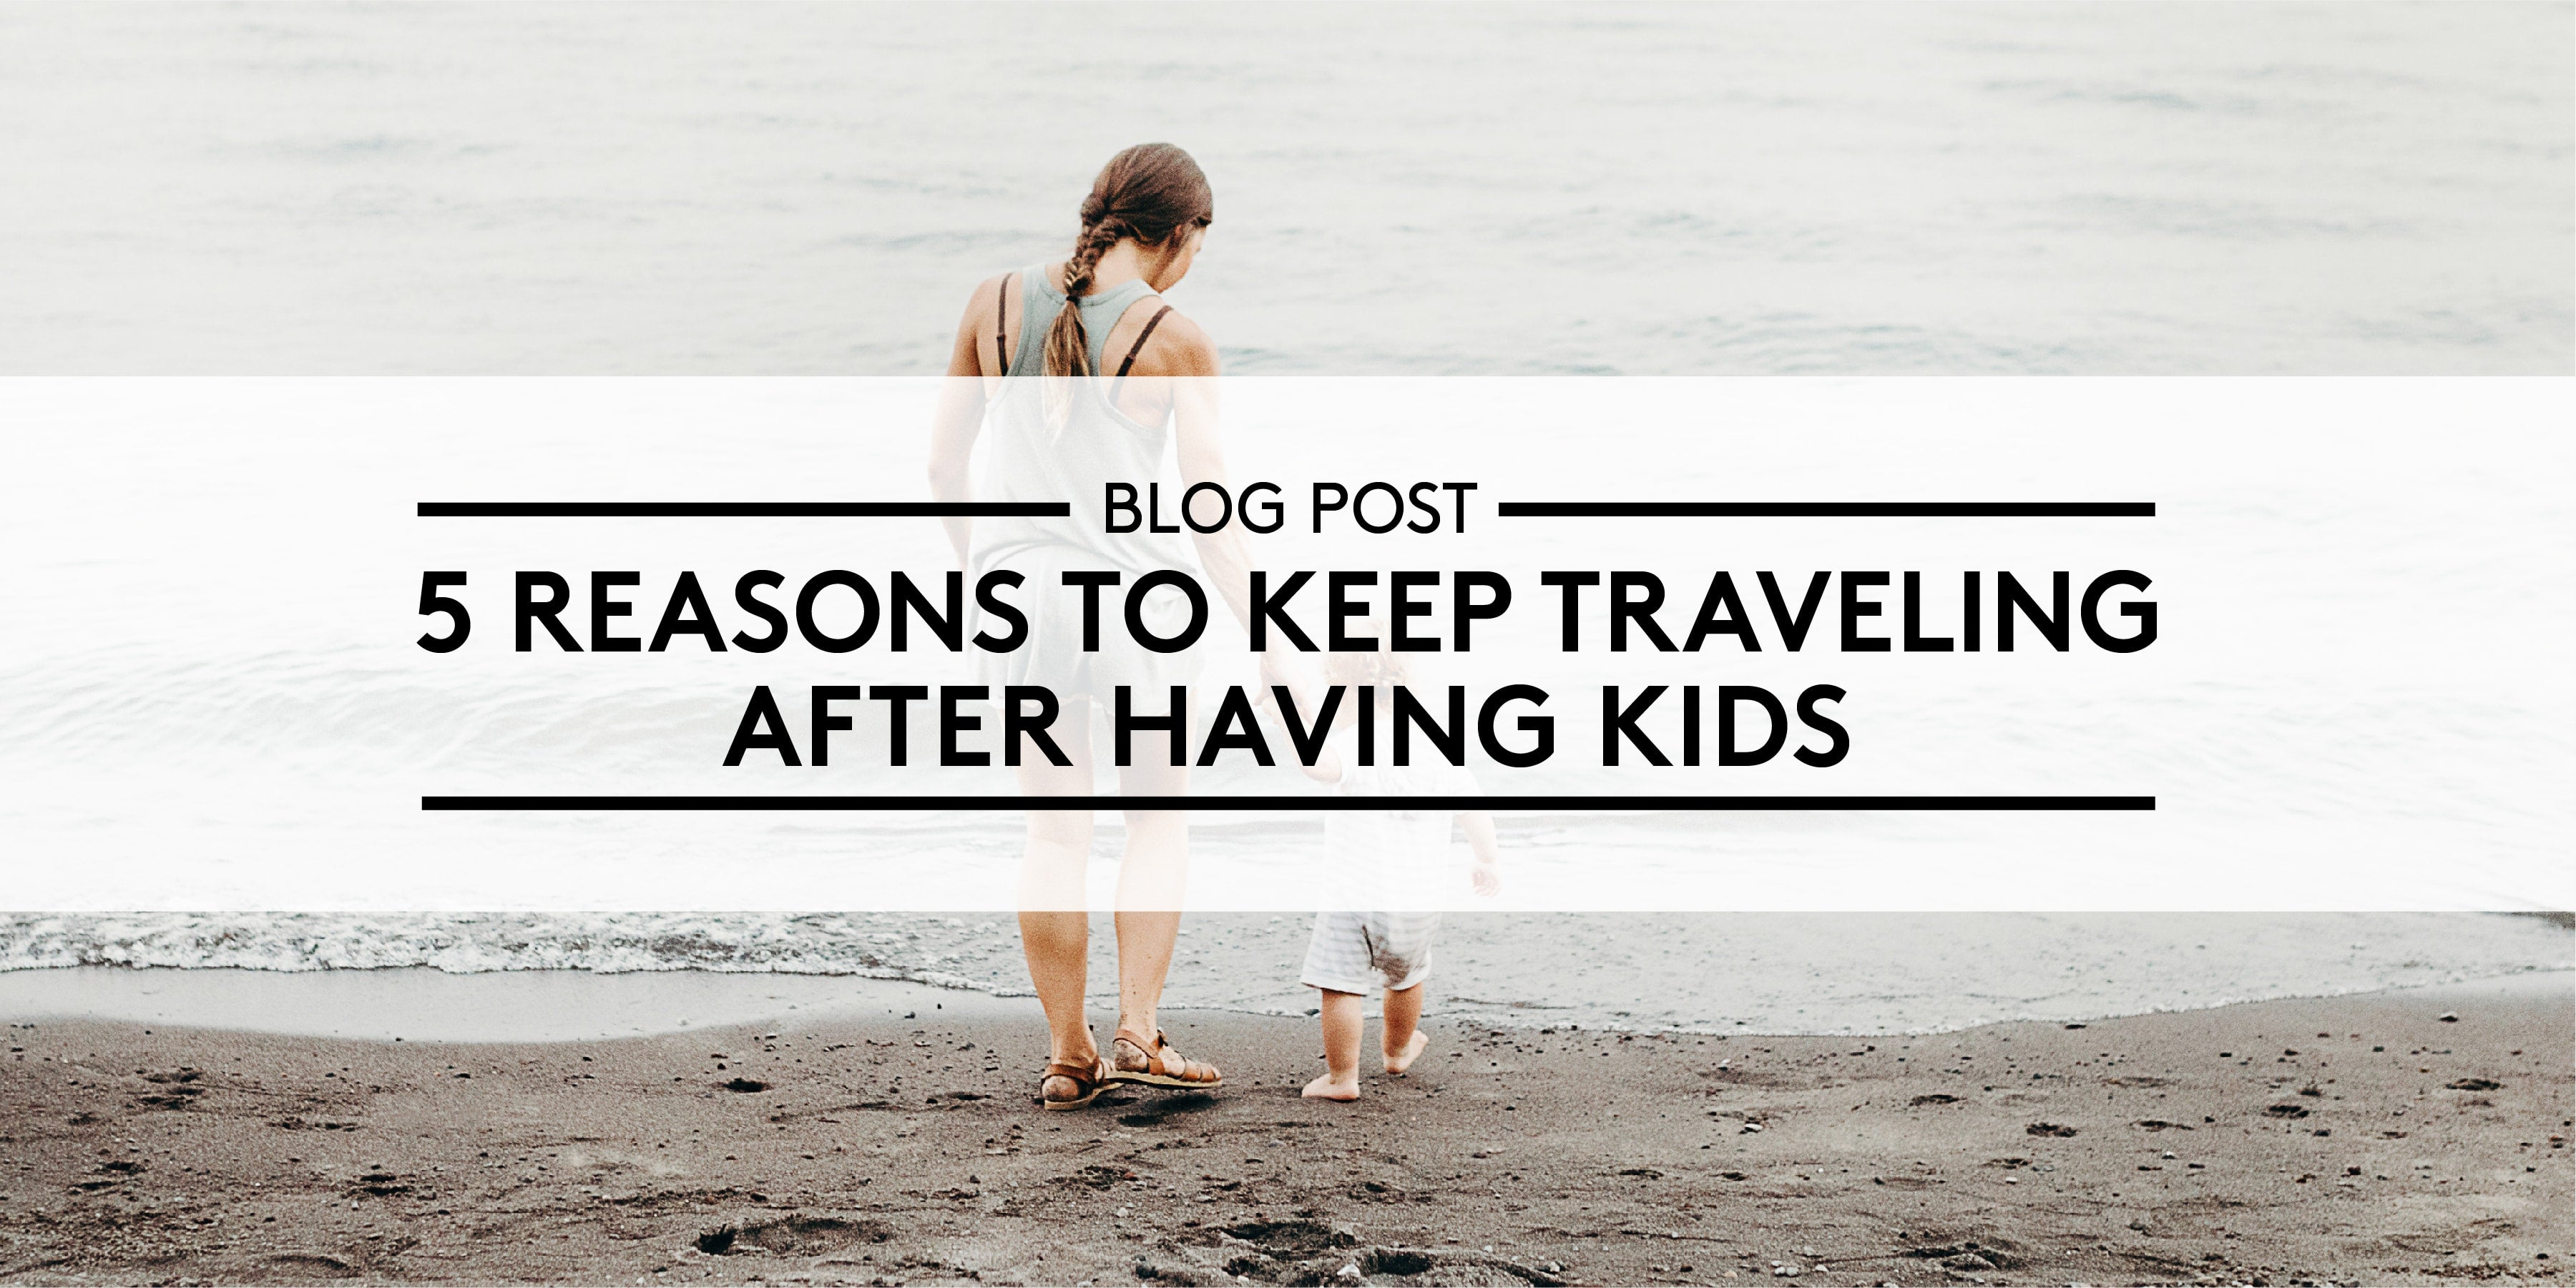 5 Reasons to Keep Traveling After Having Kids